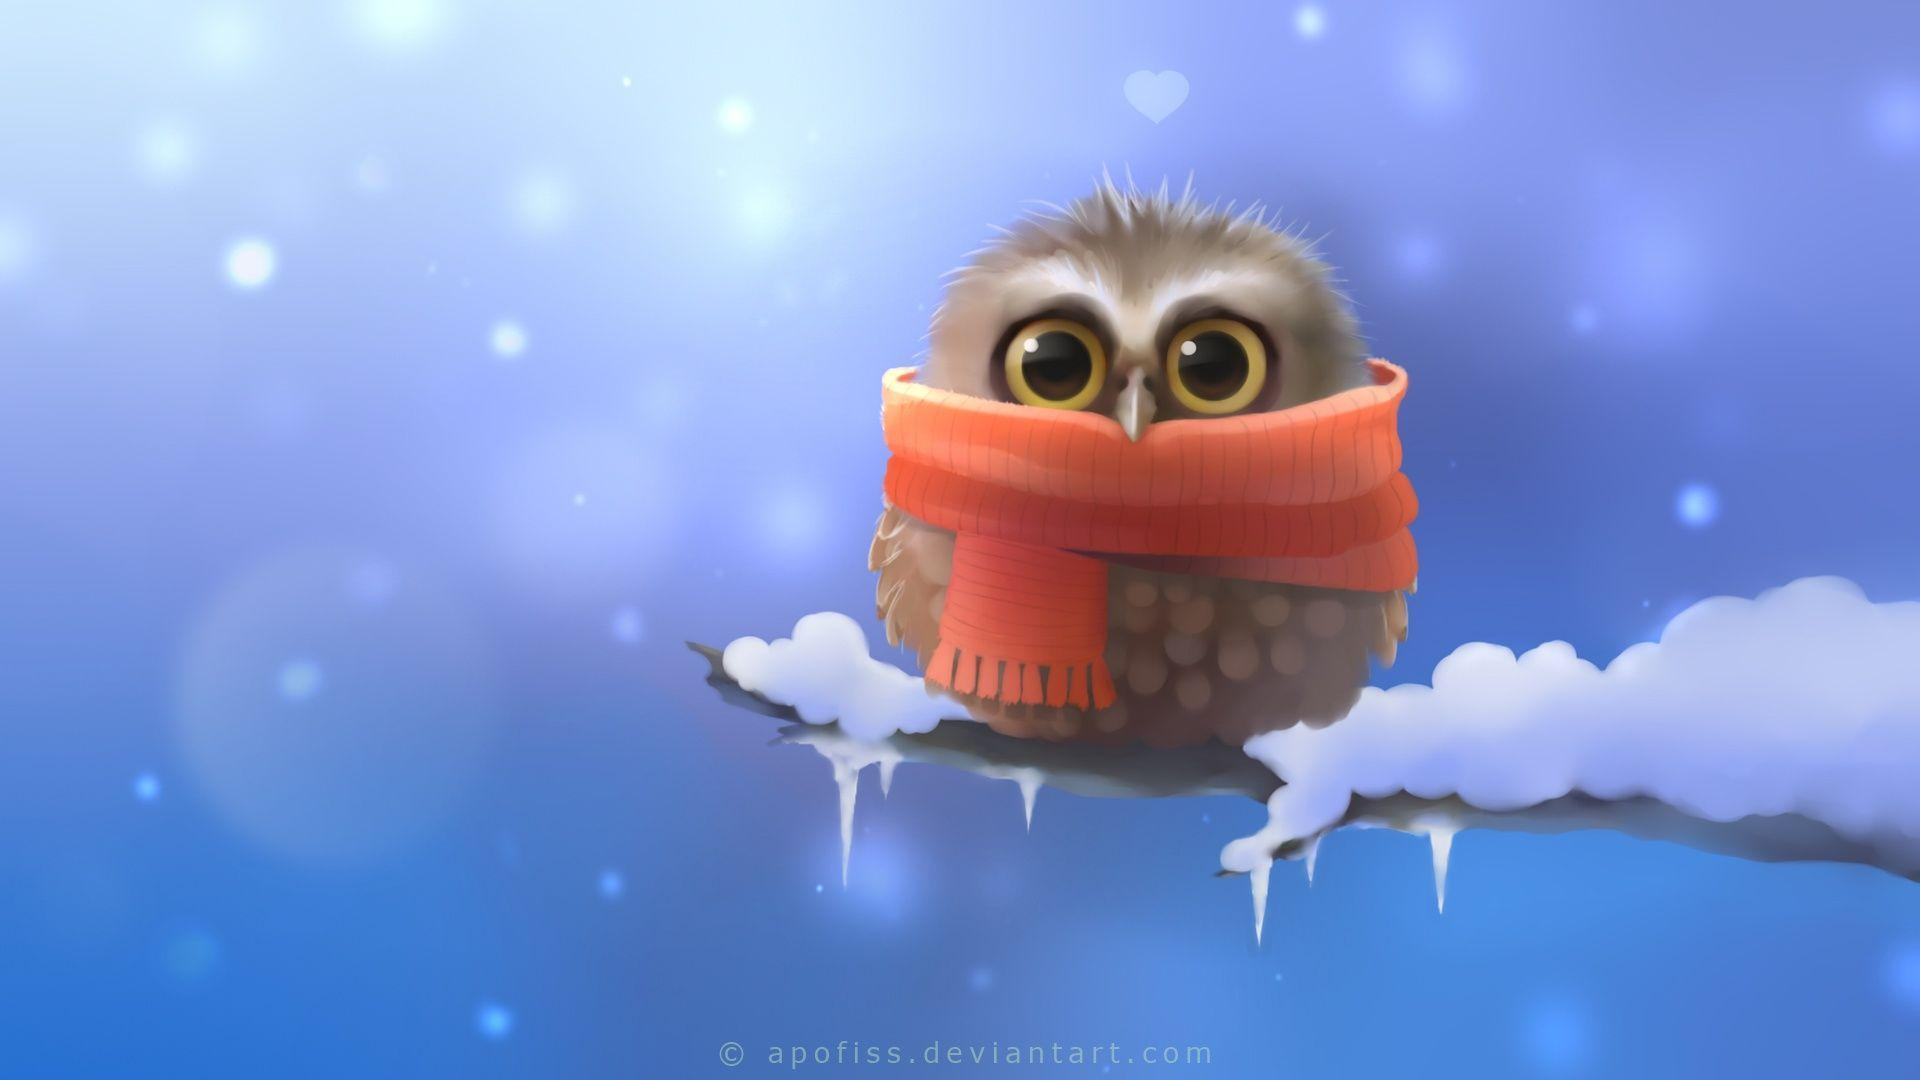 Cute Owl Wallpapers | HD Wallpapers